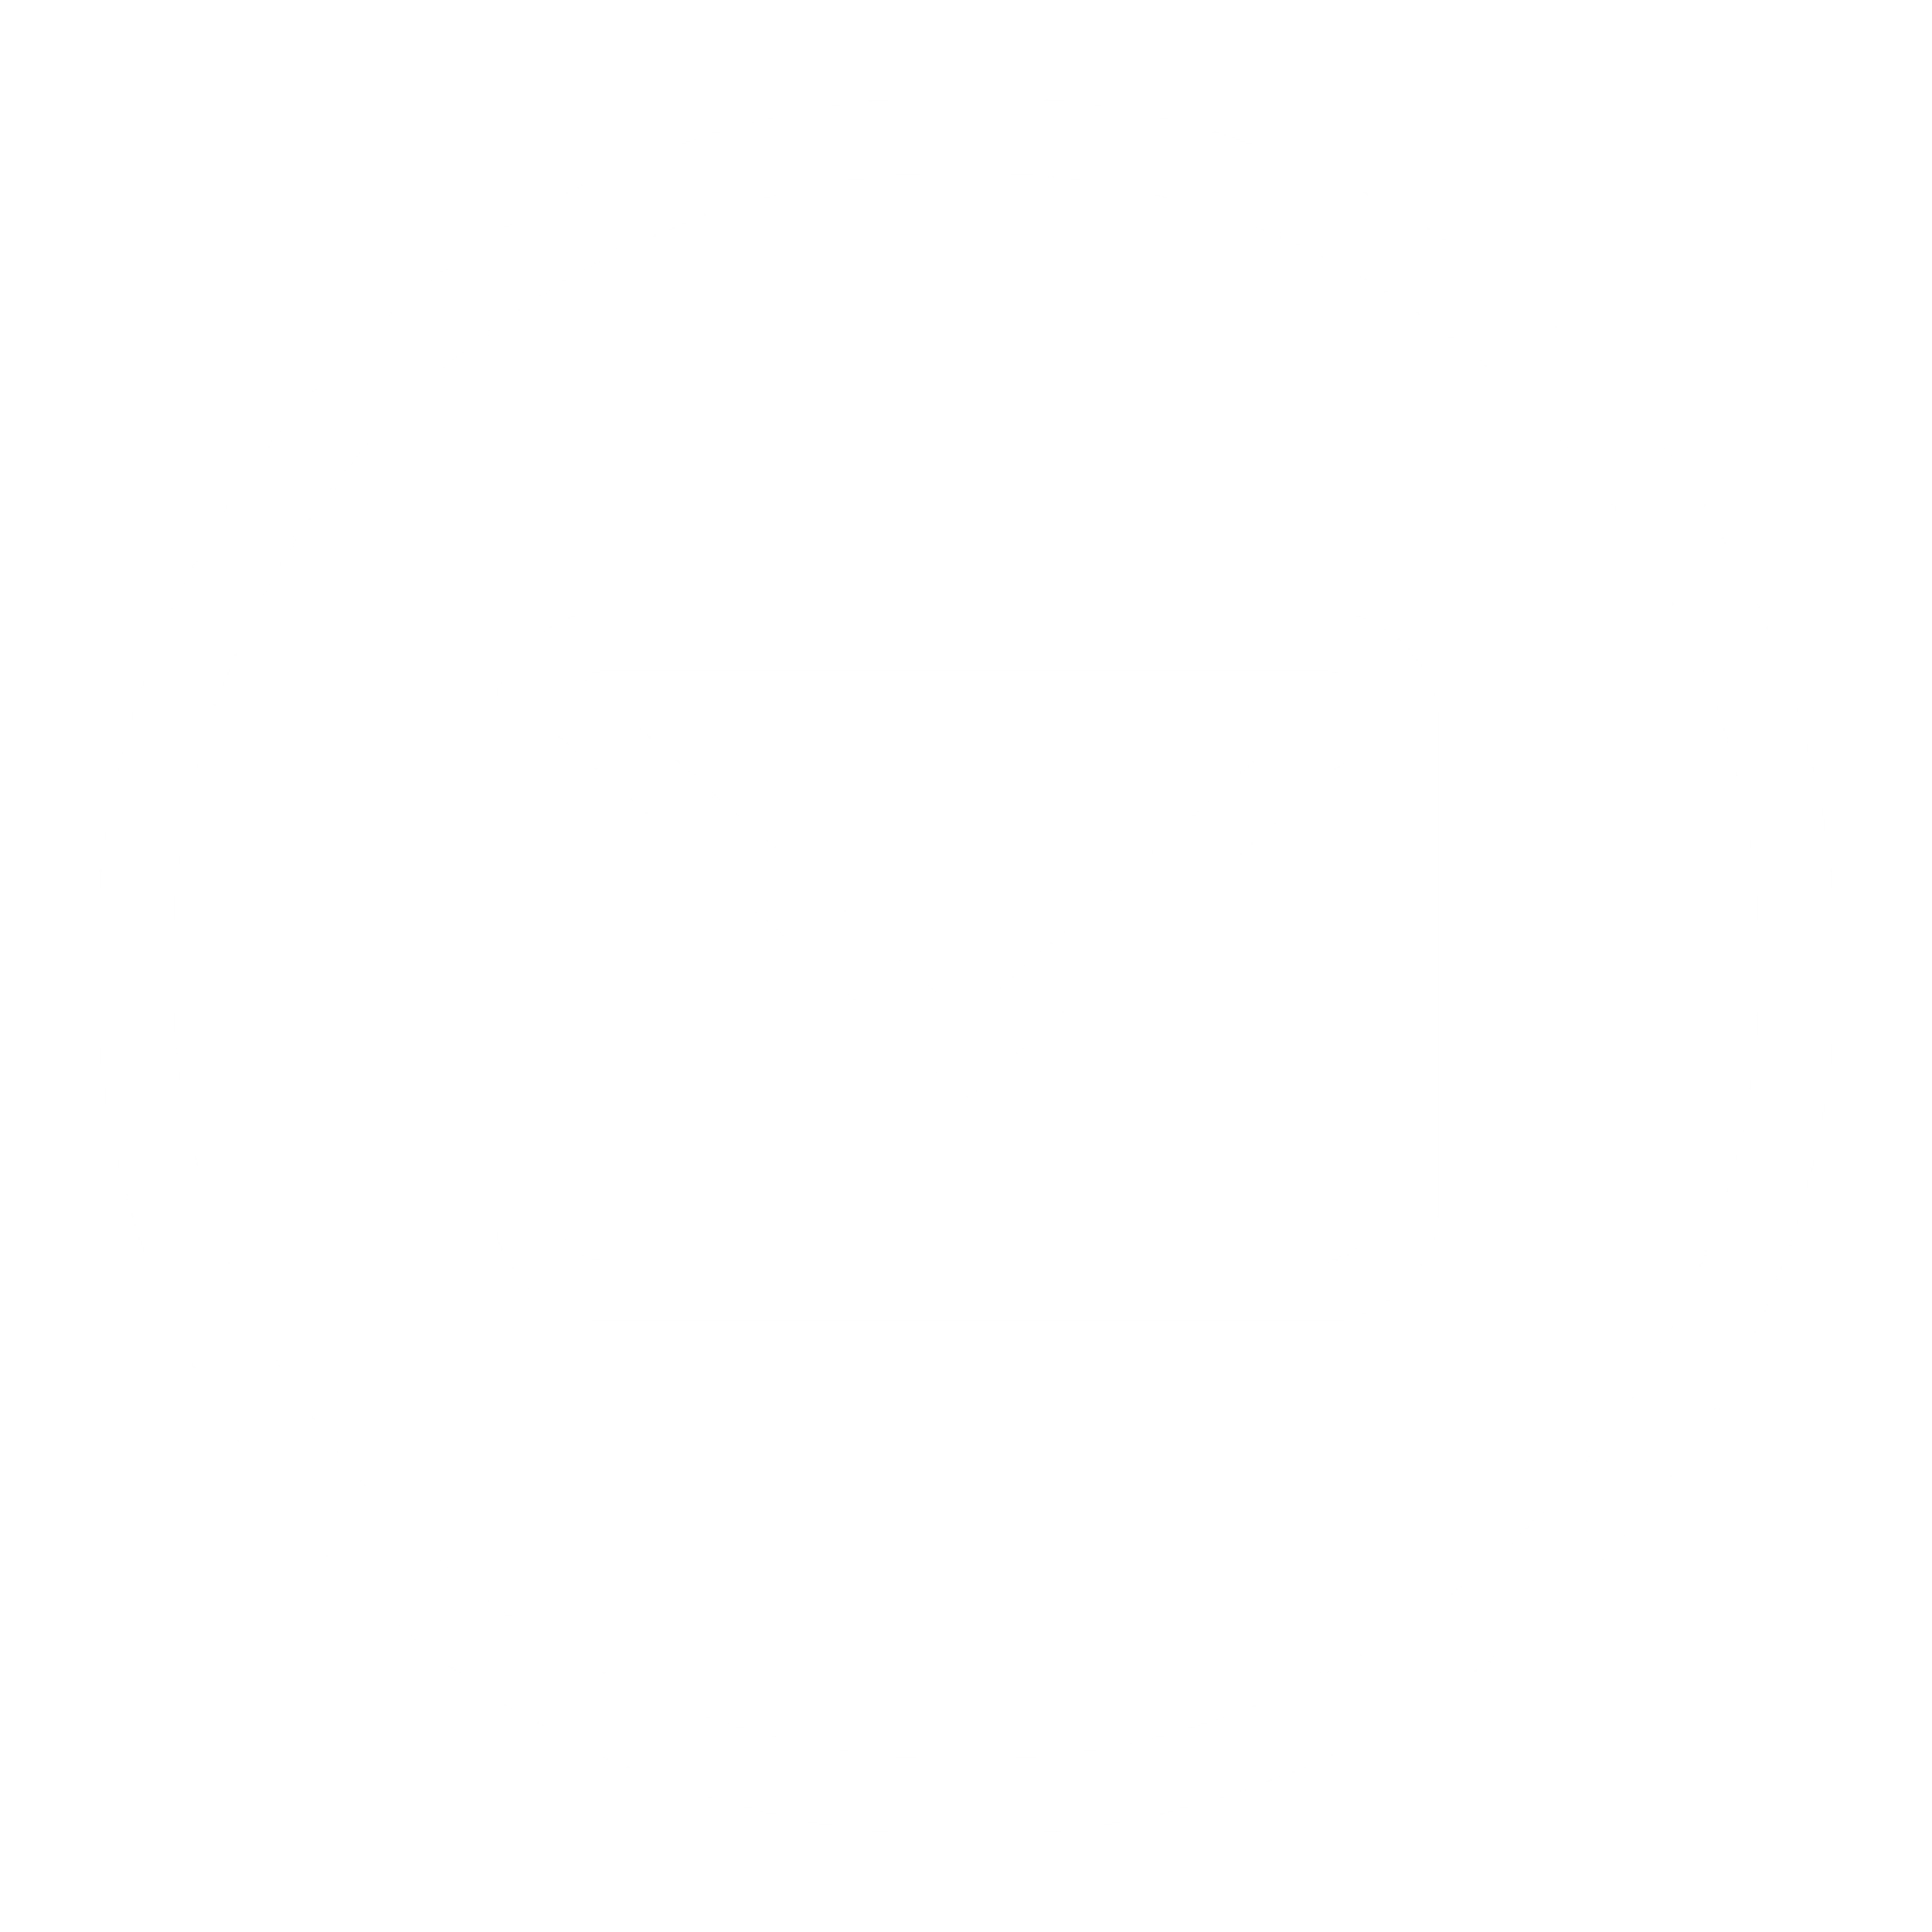 email icon white